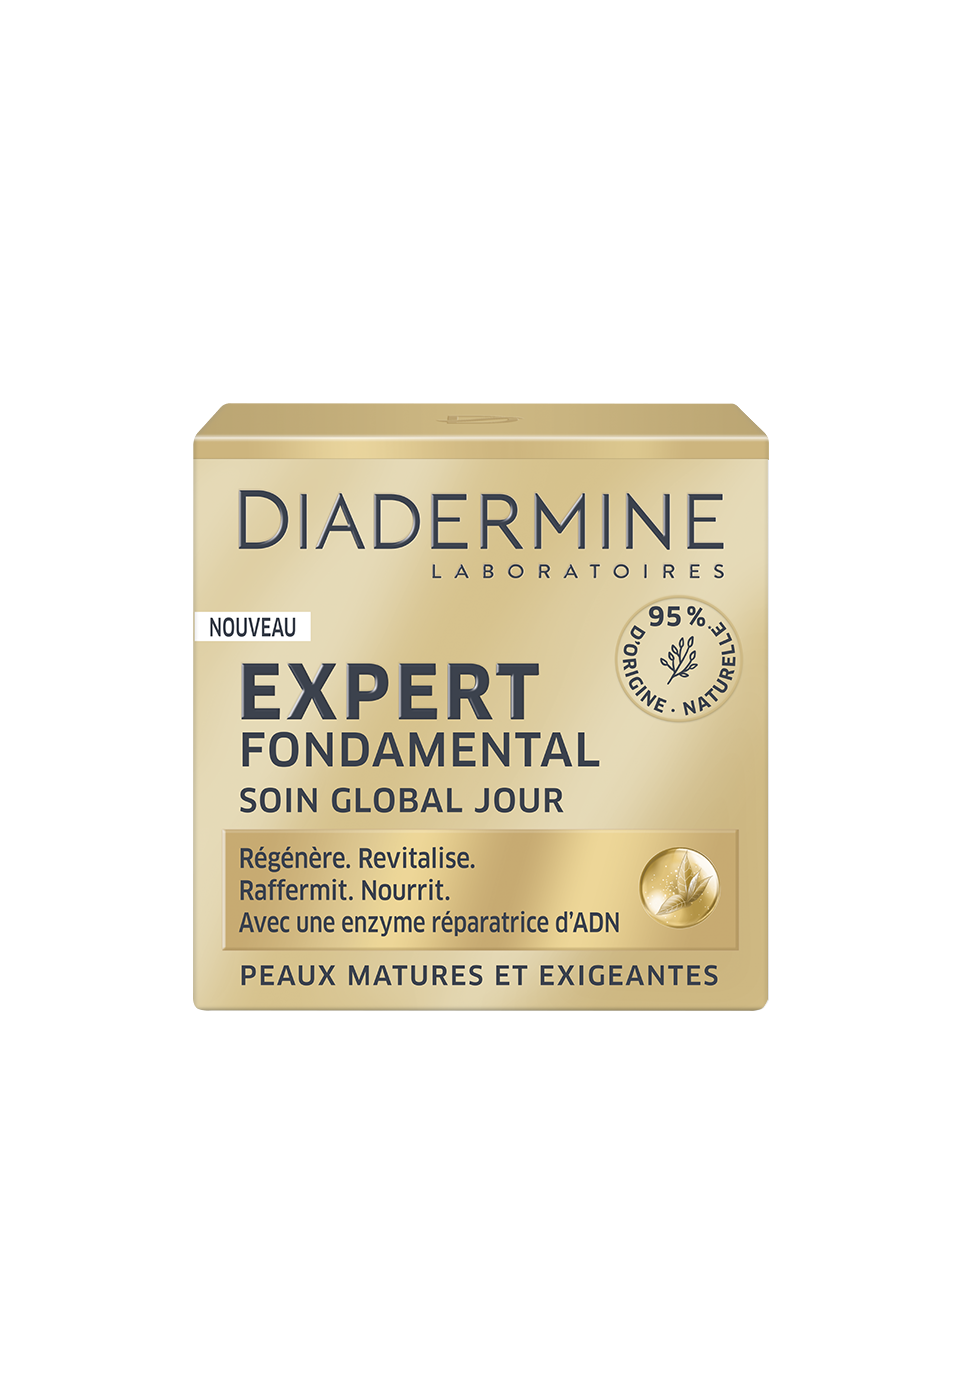 expert fondamental soin global jour